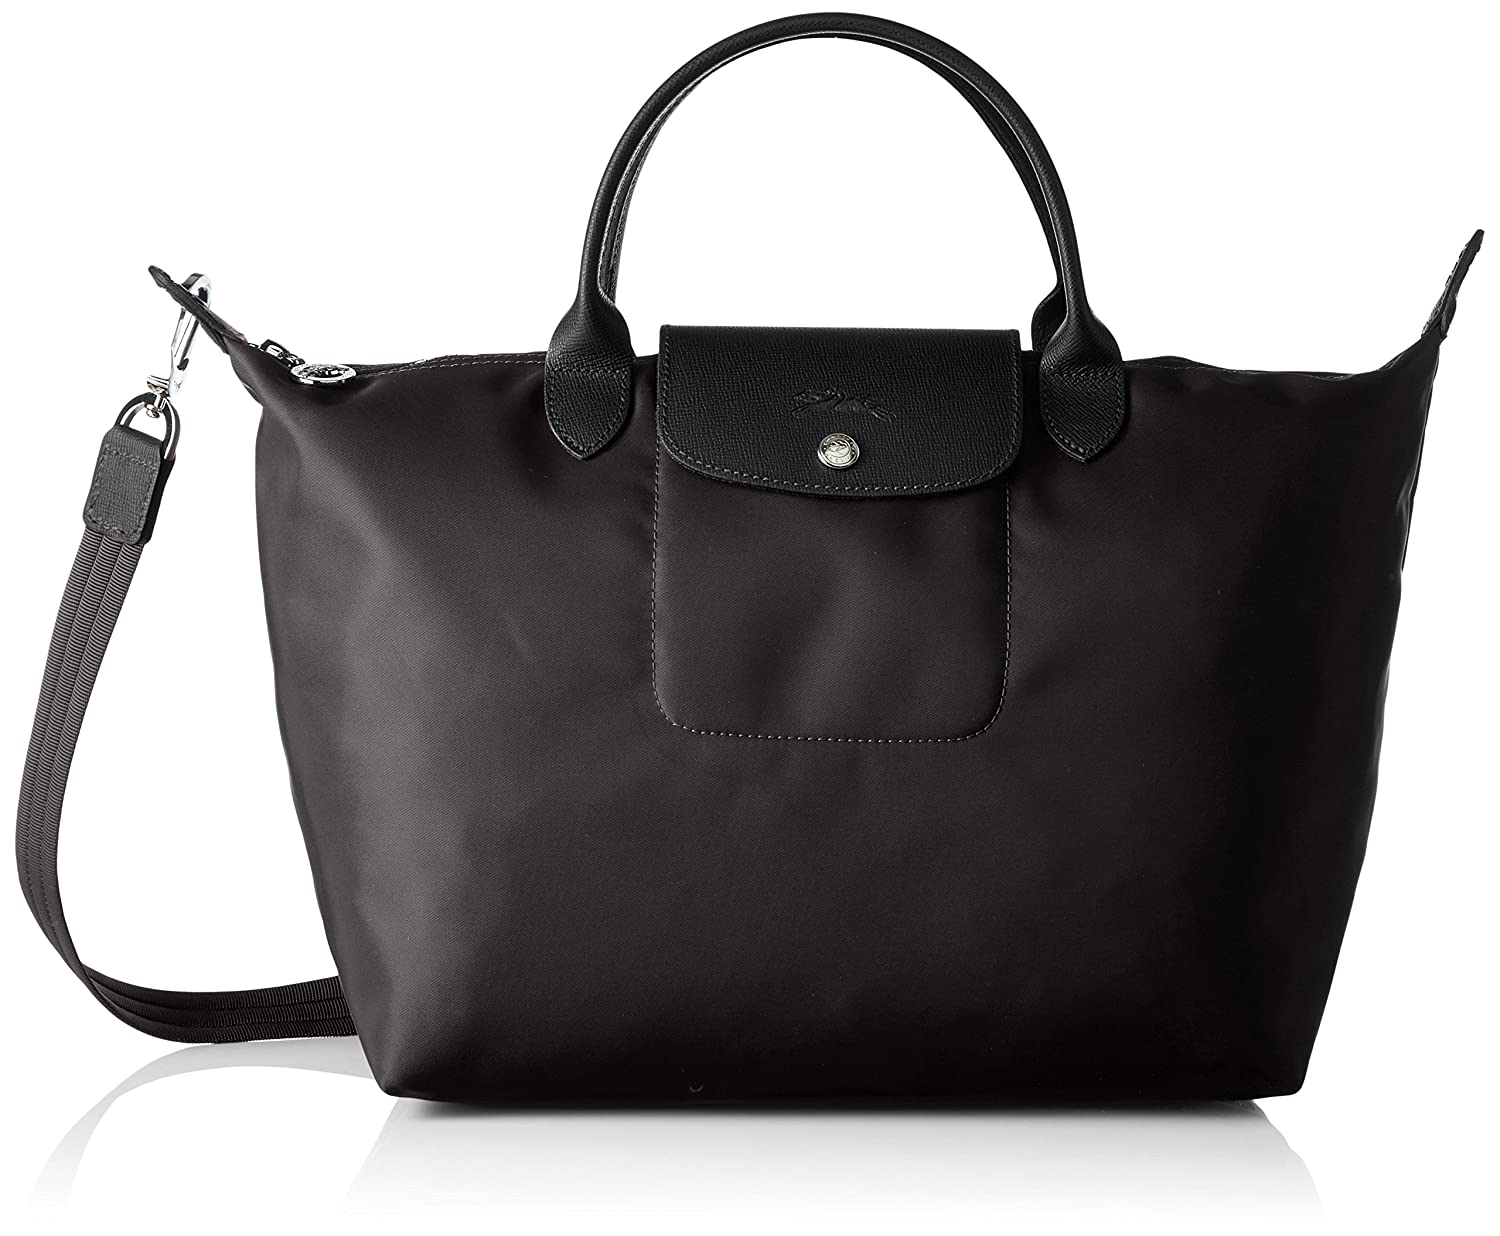 ffccf463e23d Amazon.com  Longchamp Le Pliage Neo Ladies Medium Canvas Tote Handbag  L1515578001  Shoes